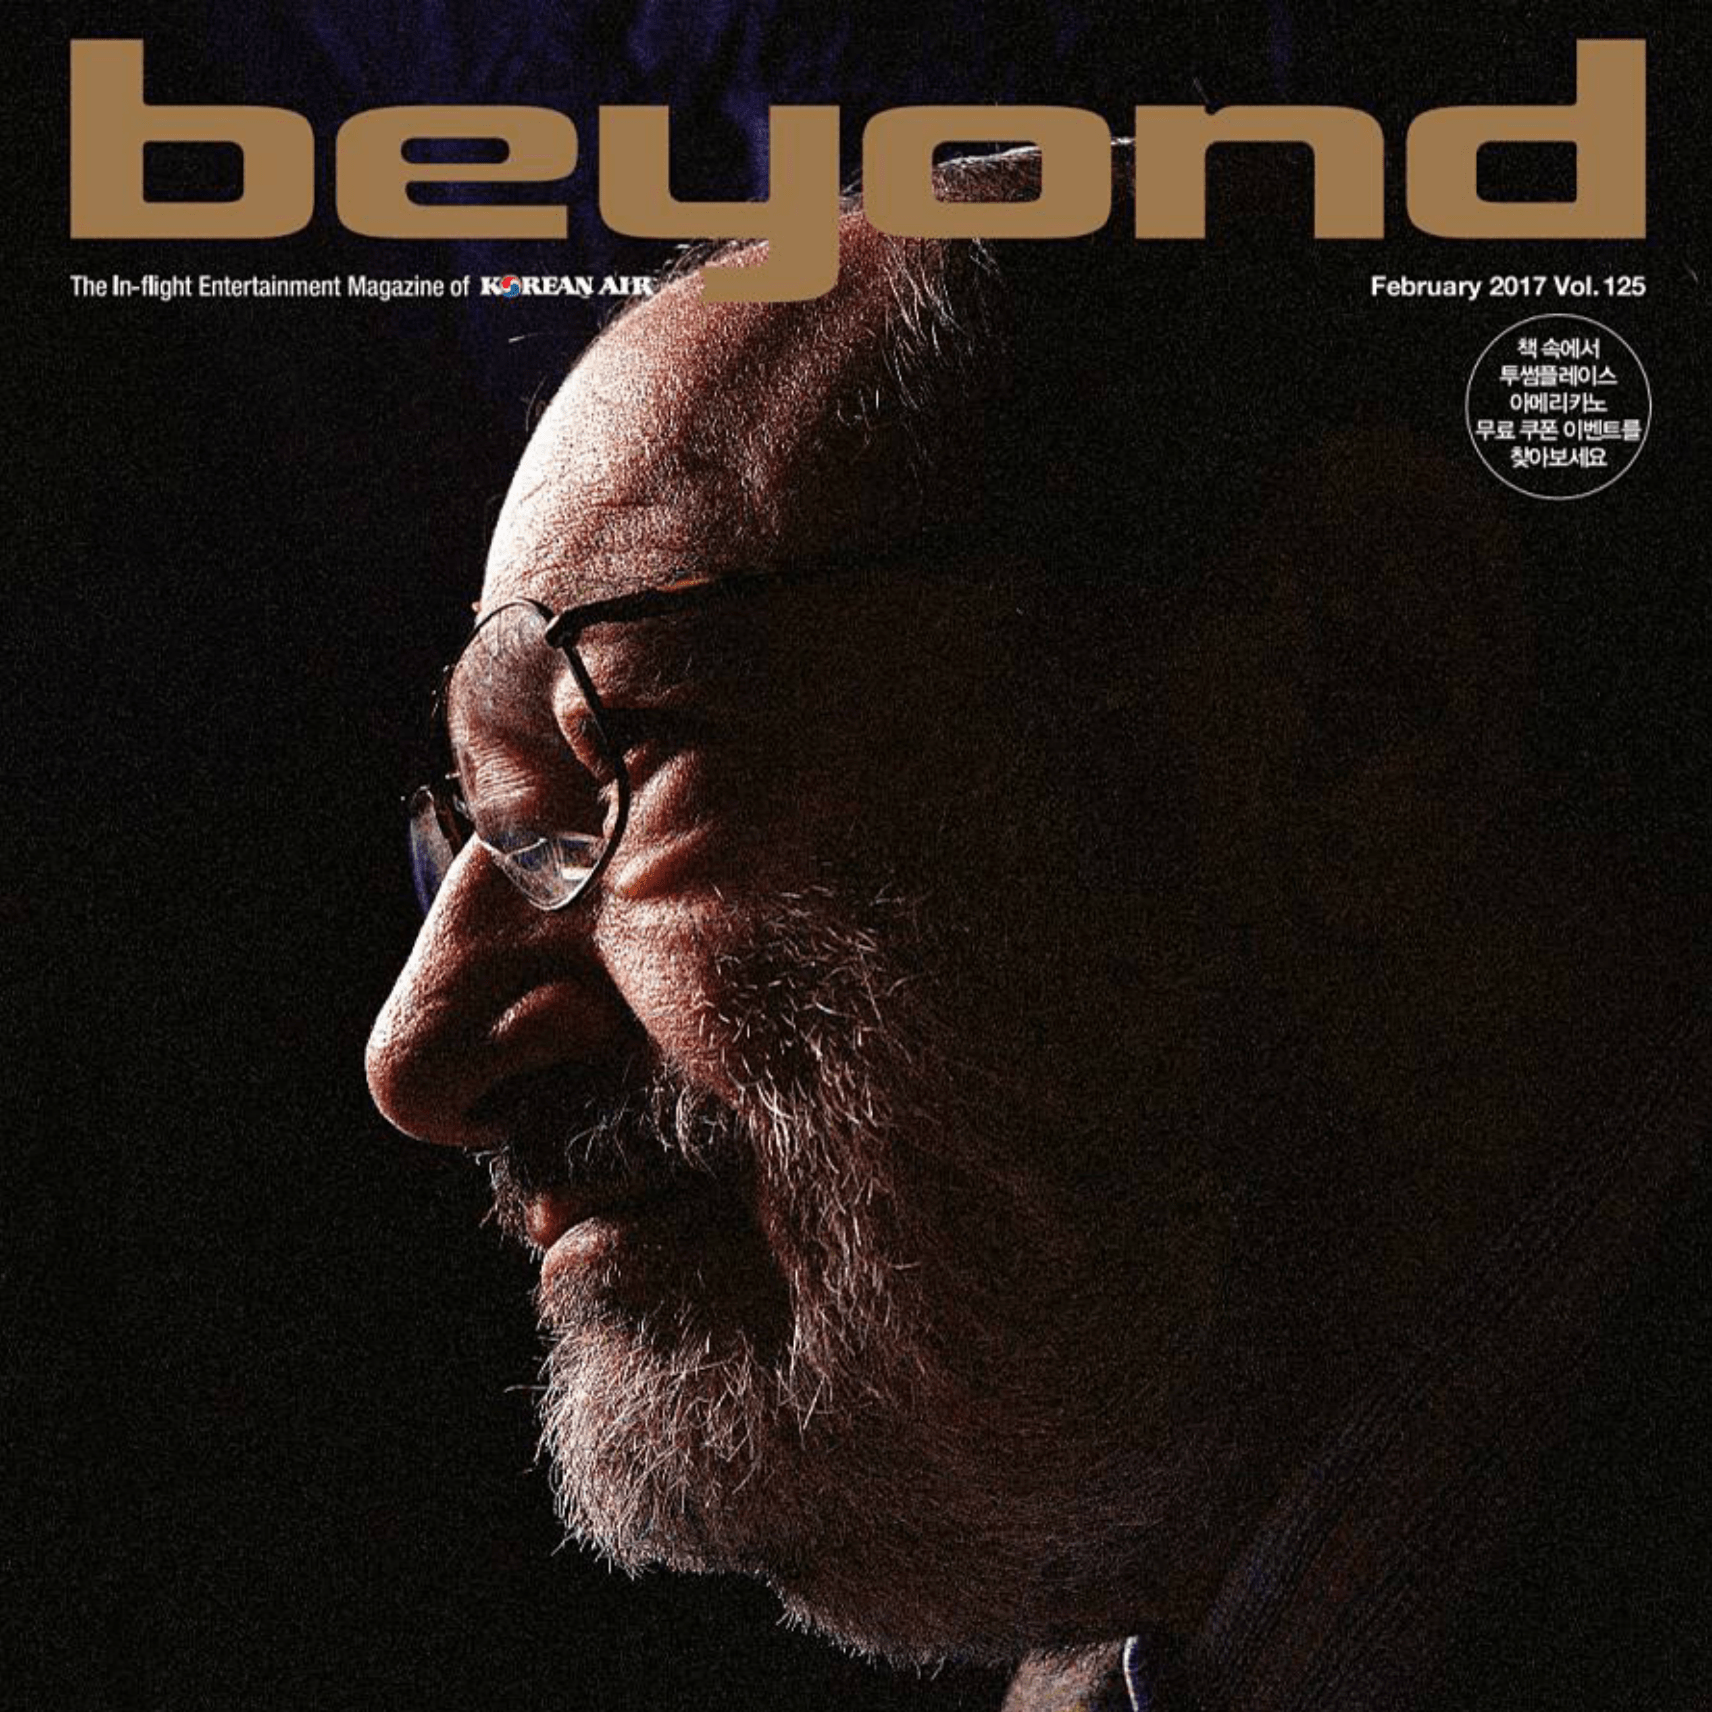 Beyond Vol. 125 - February 2017 - 112 pages